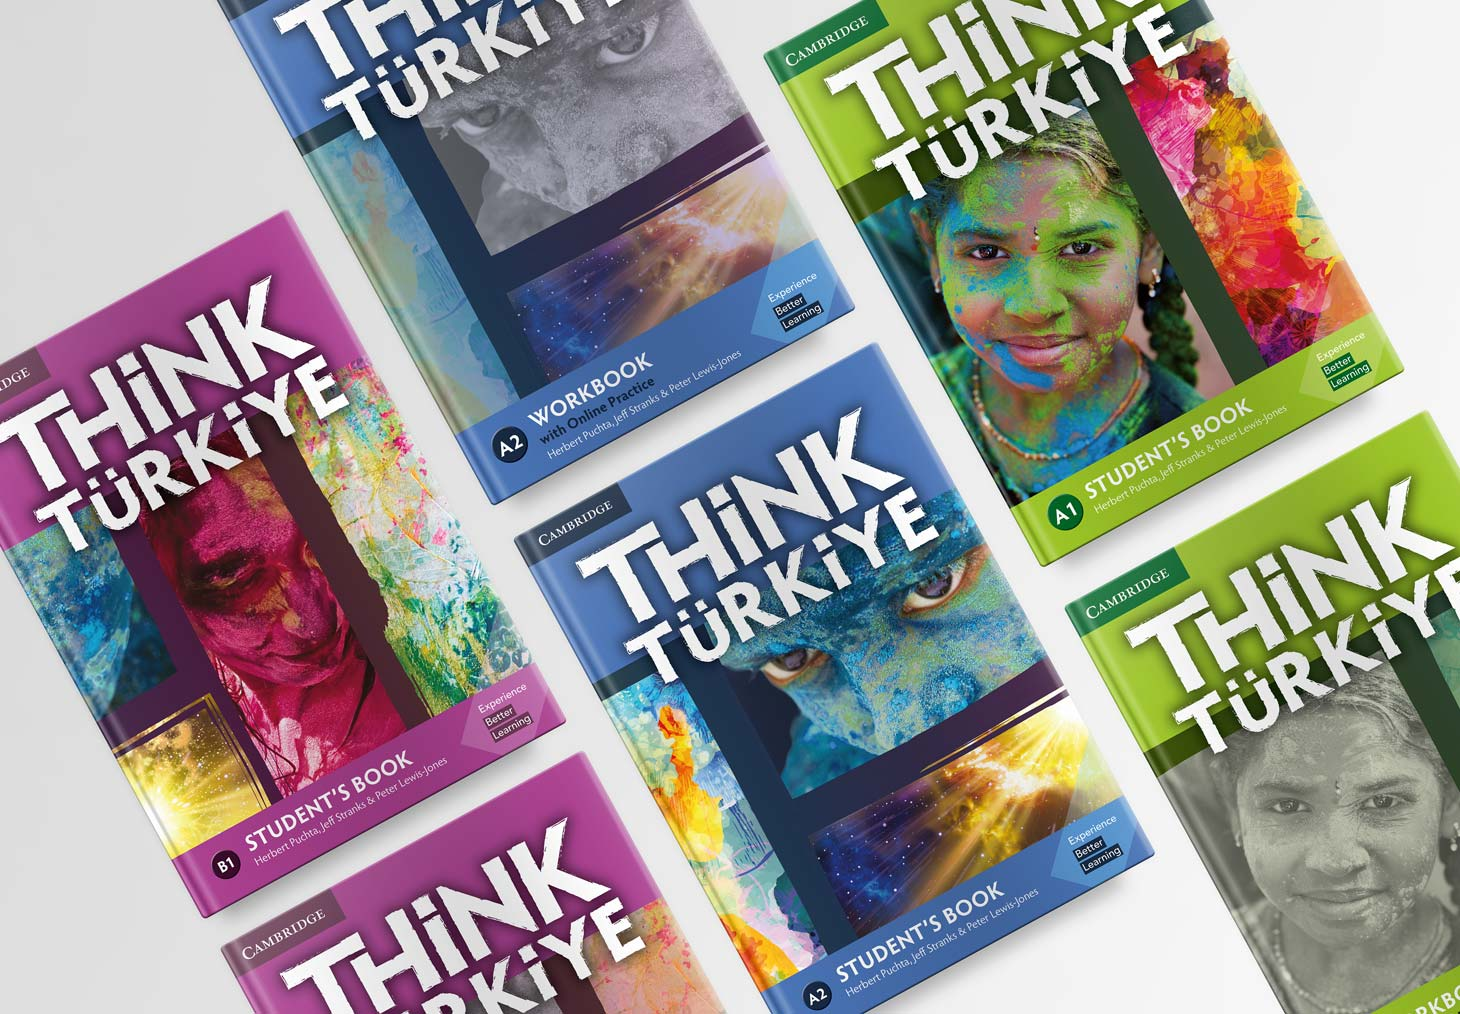 Think Turkiye